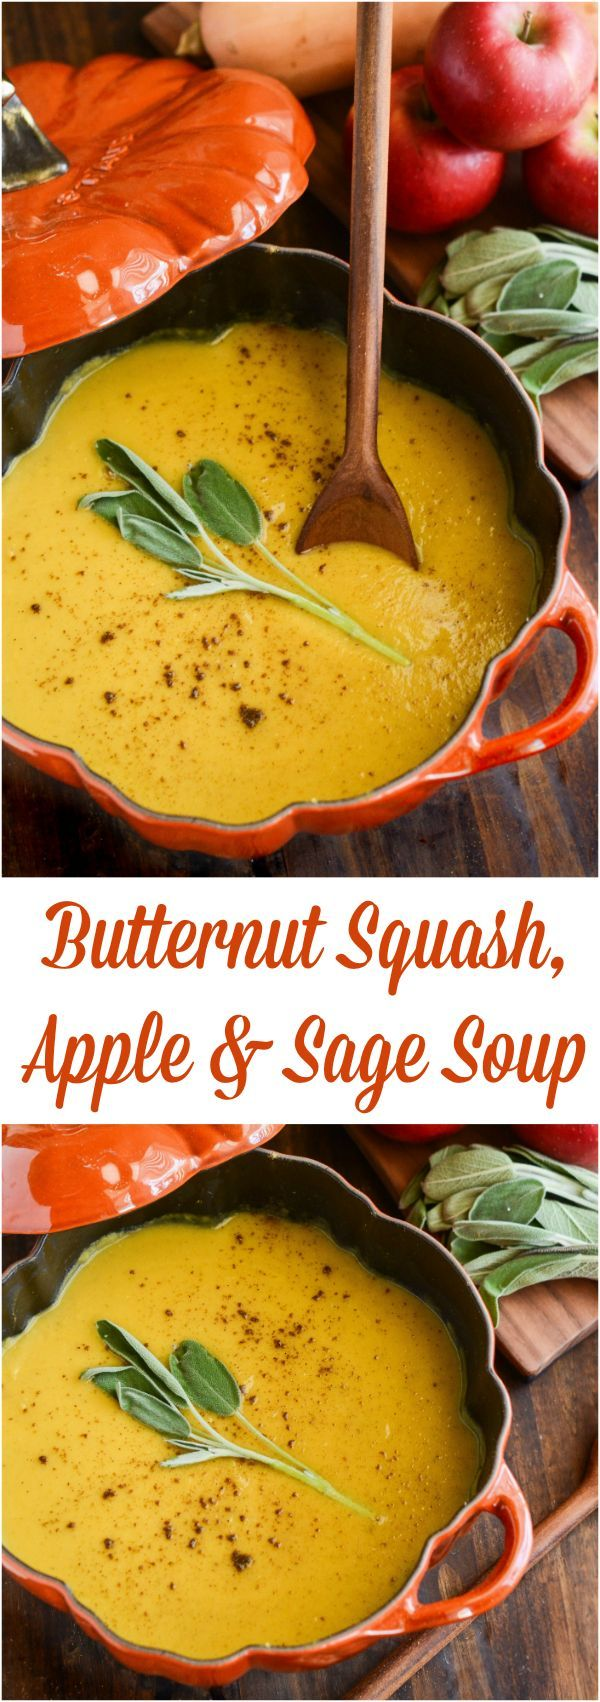 Butternut Squash, Apple & Sage Soup - a healthy soup that is creamy with no added cream!